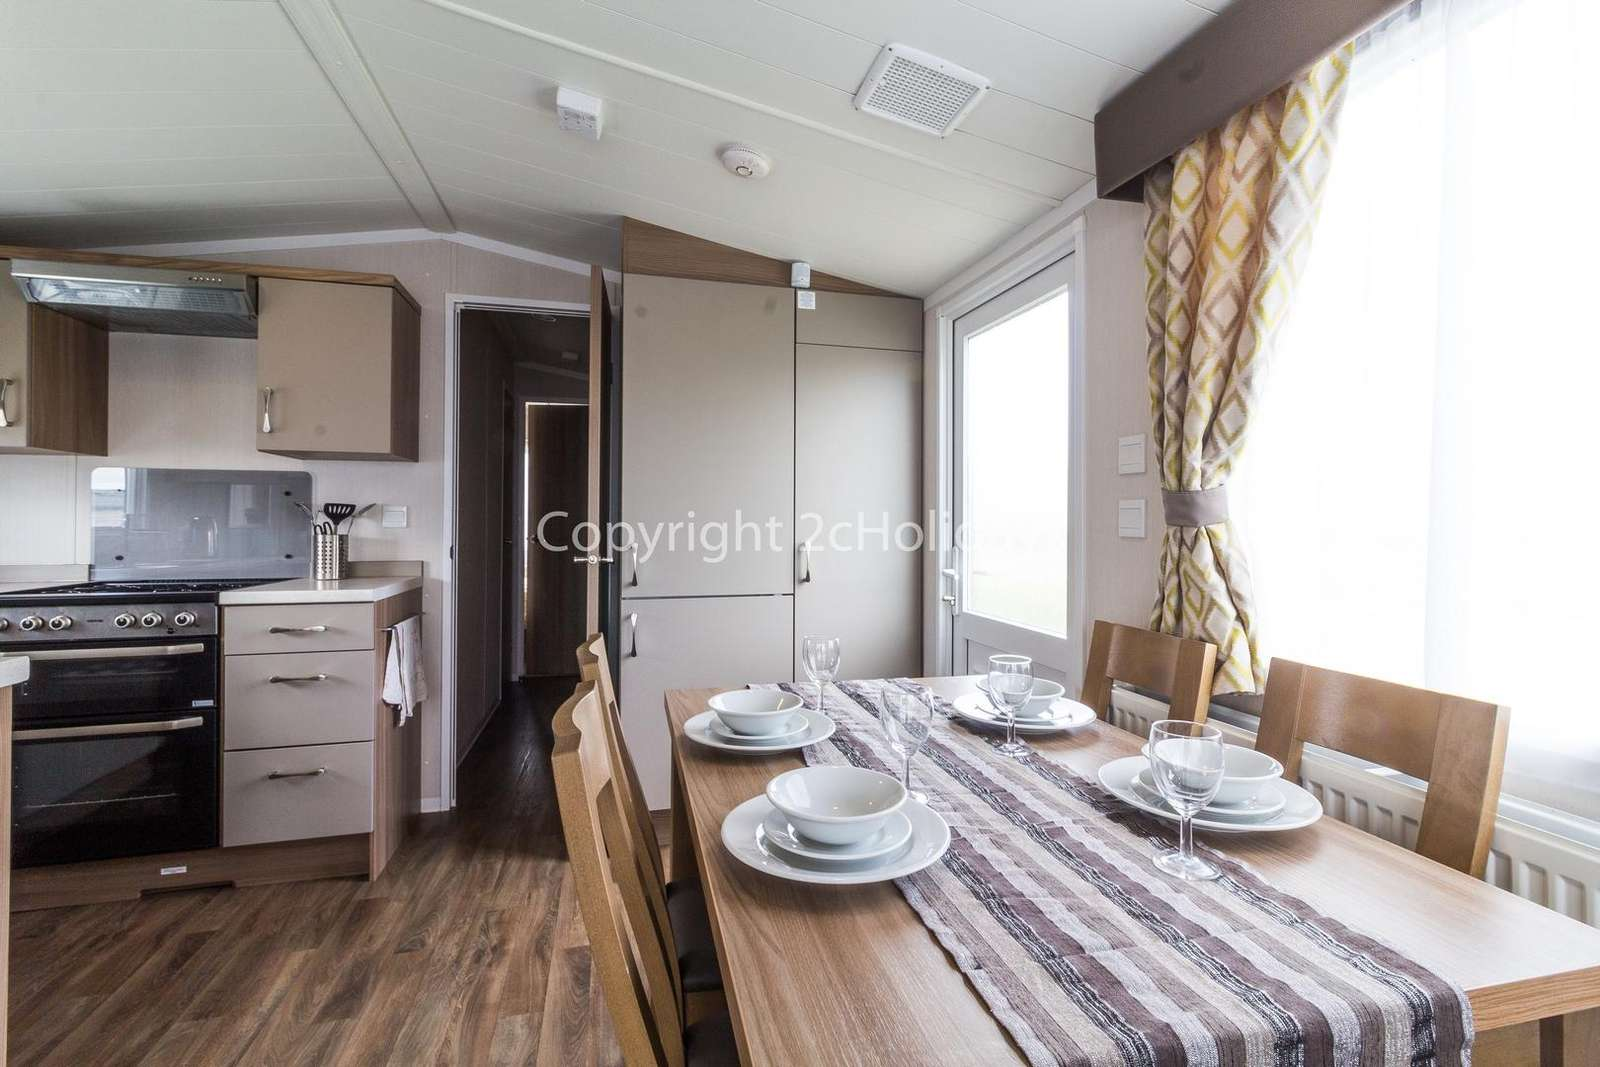 The perfect place to dine with your family or friends in this self-catering accommodation!